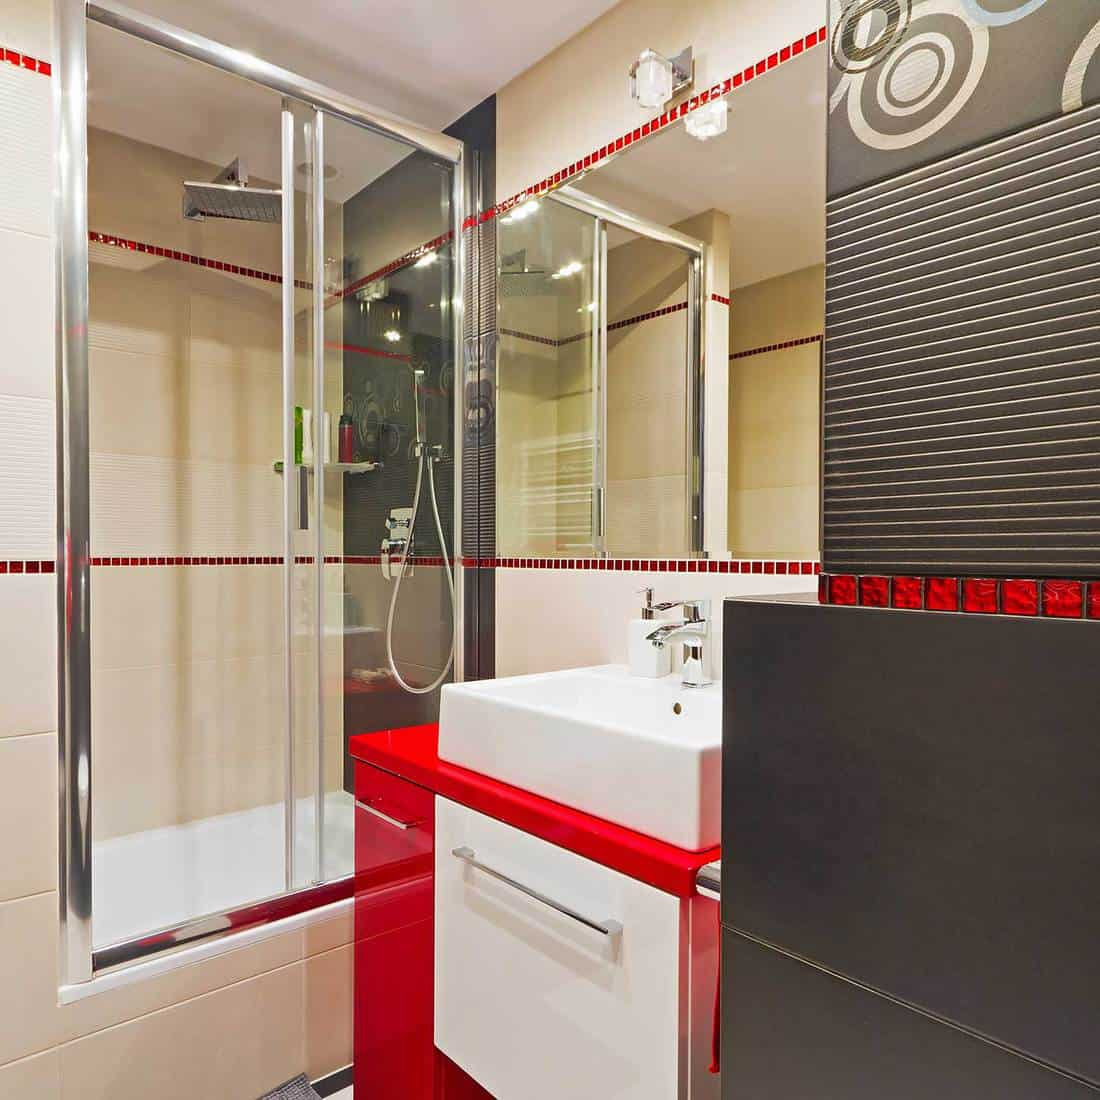 Modern black, red and white bathroom interior with shower and sink